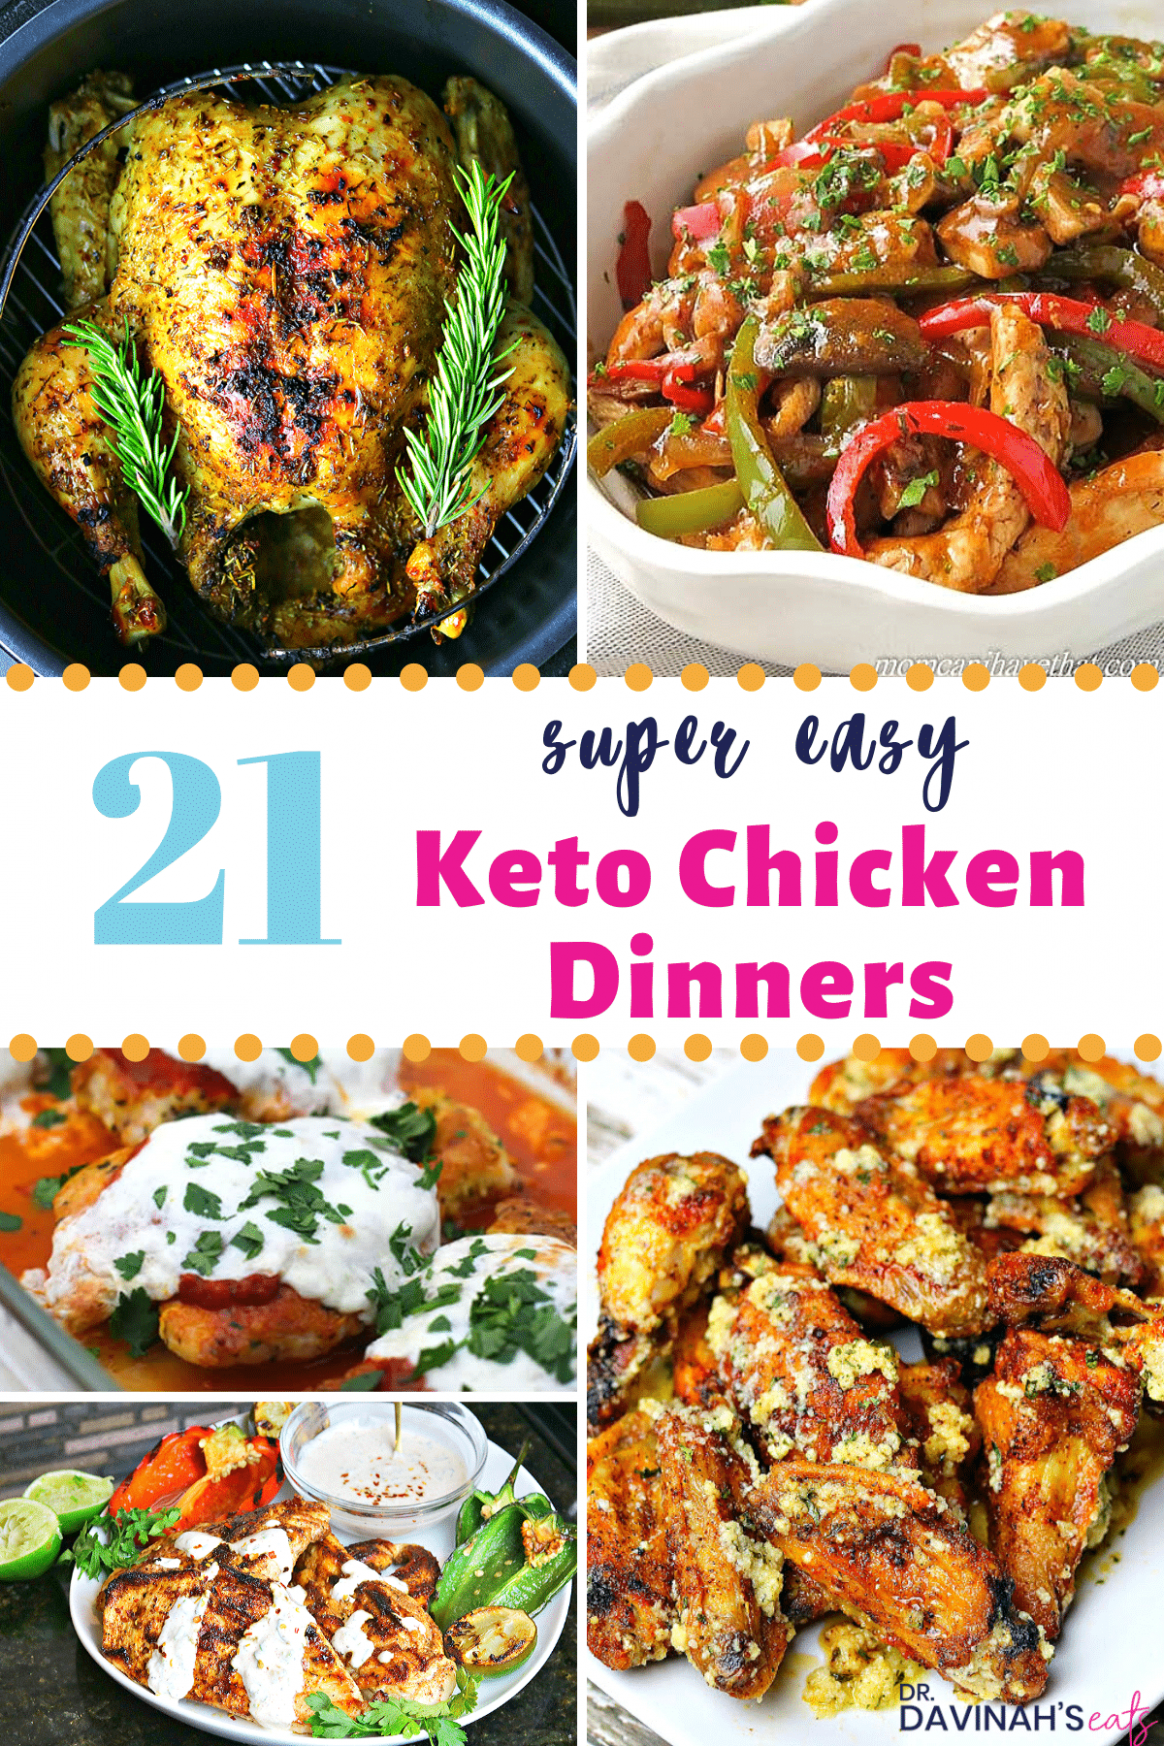 11 No Fuss Keto Chicken Dinners Recipes | Dr